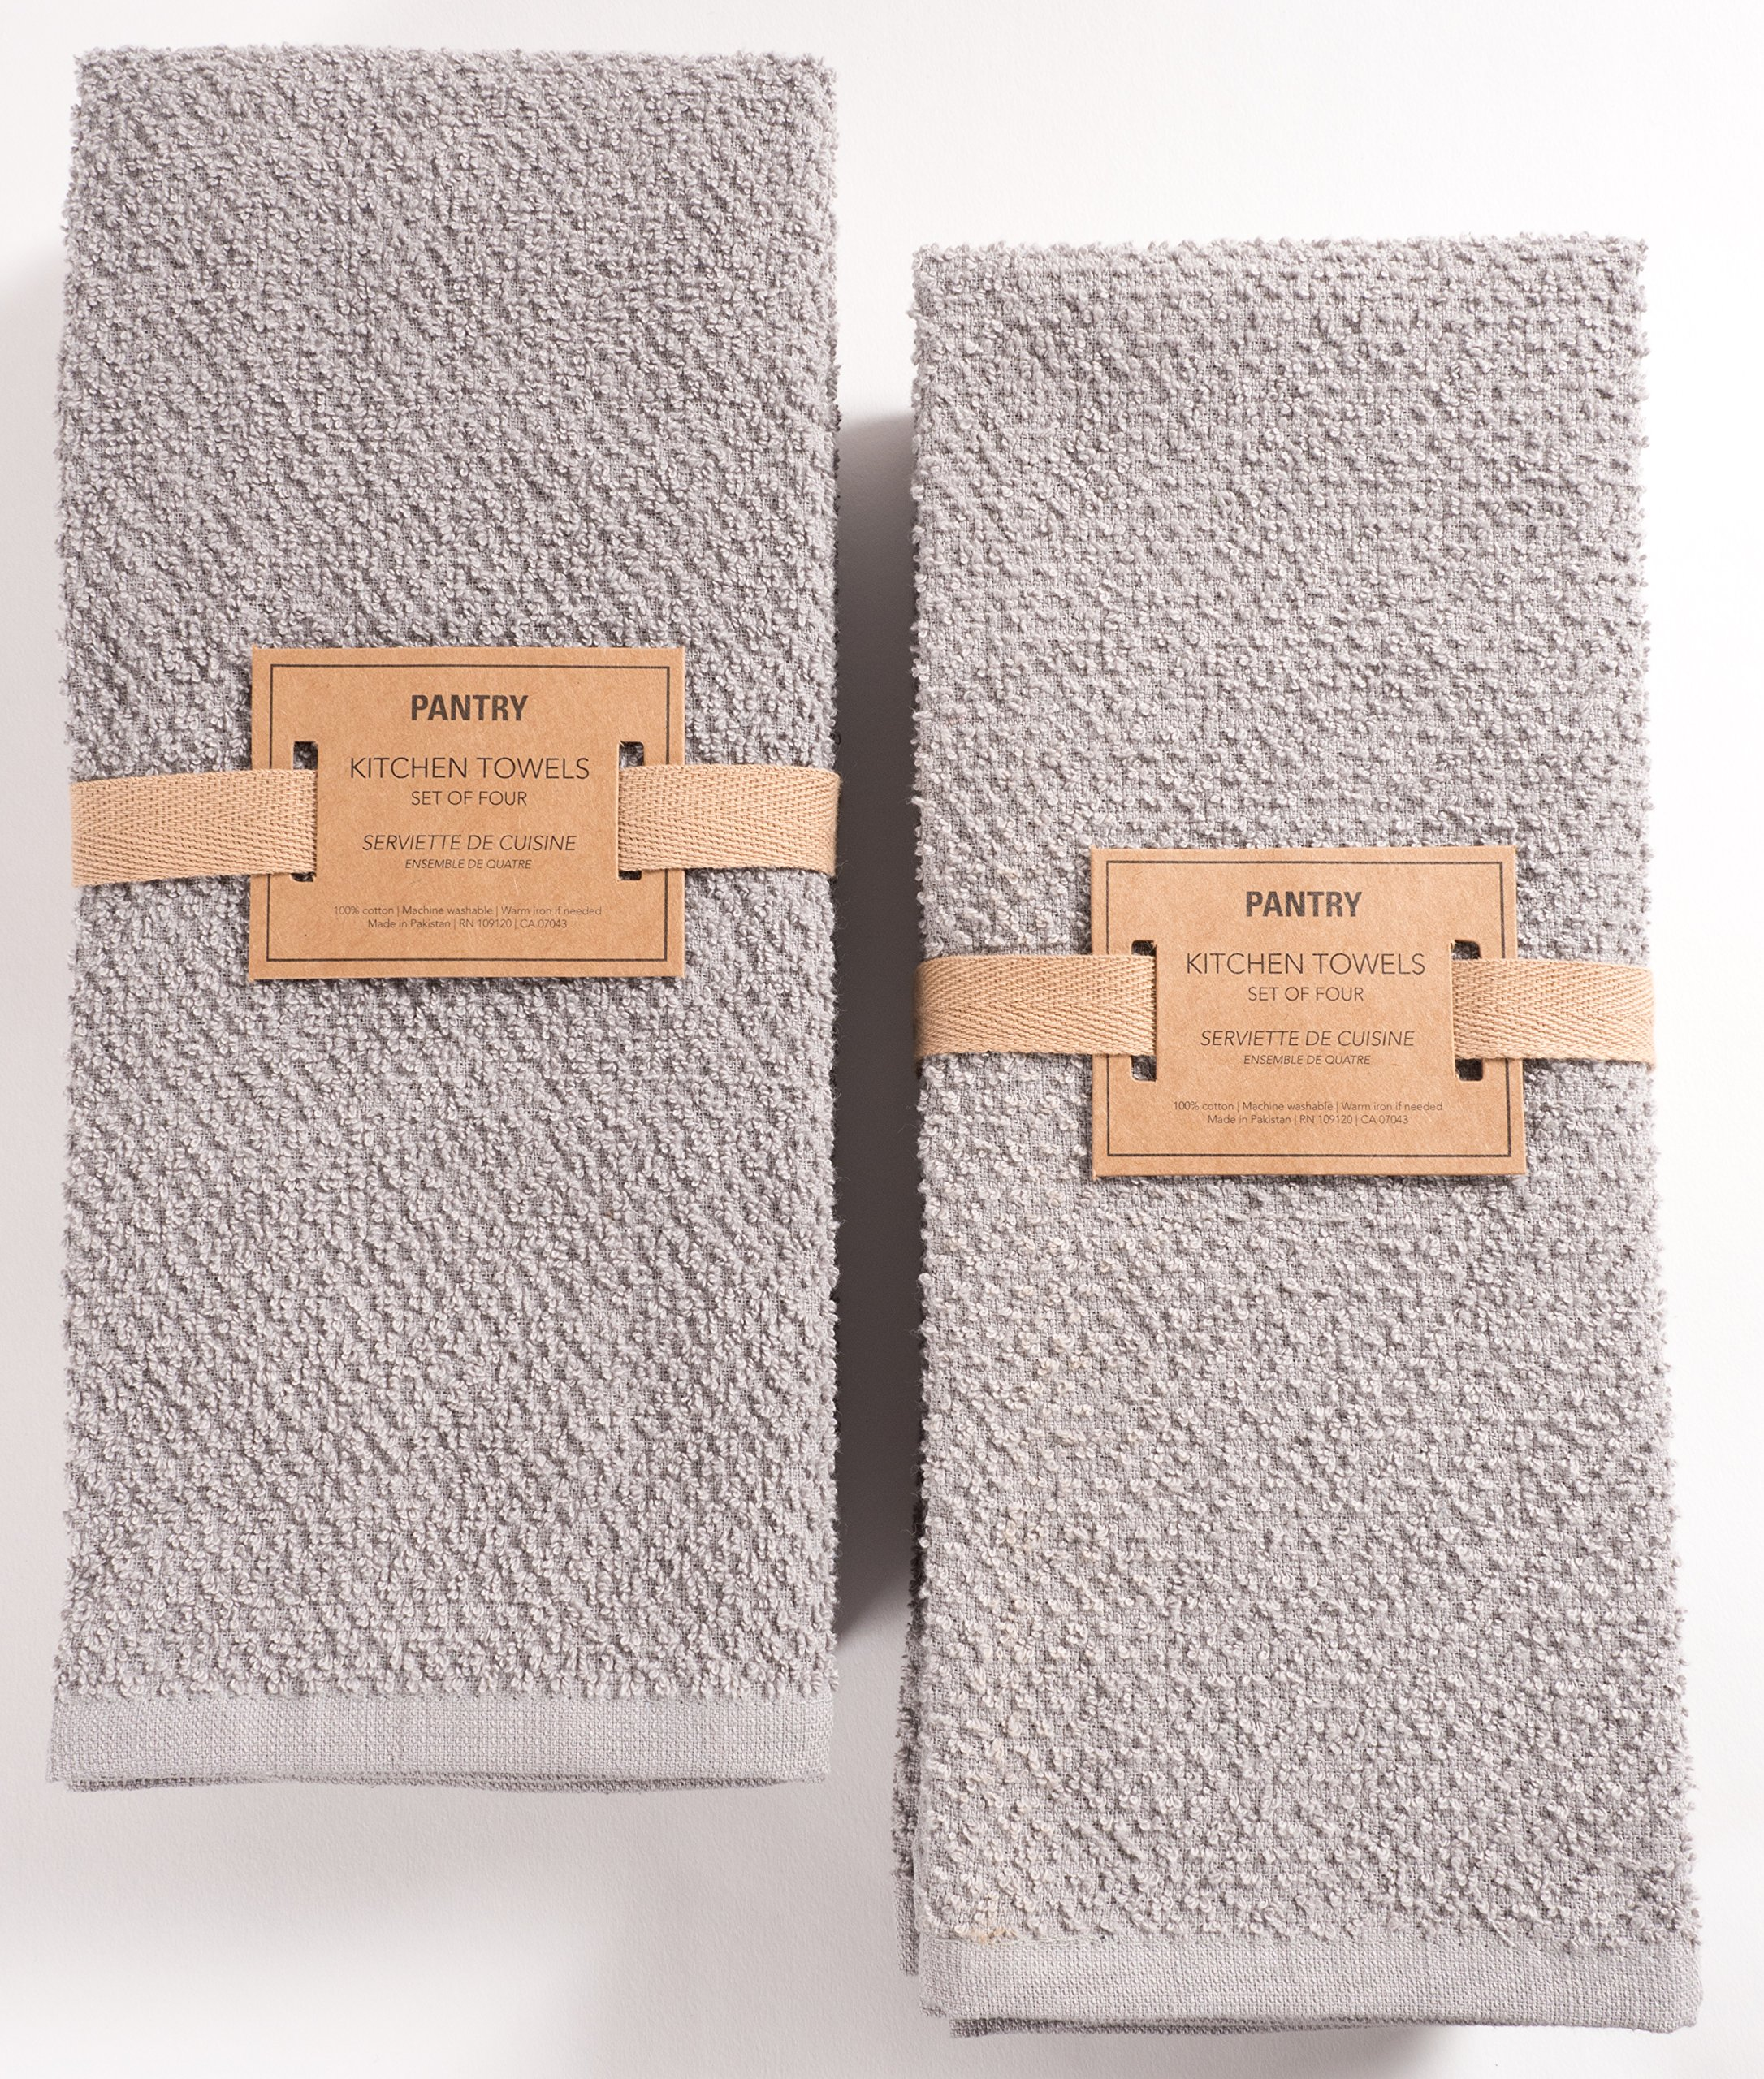 Pantry Montclair Kitchen Towels - 2 pack